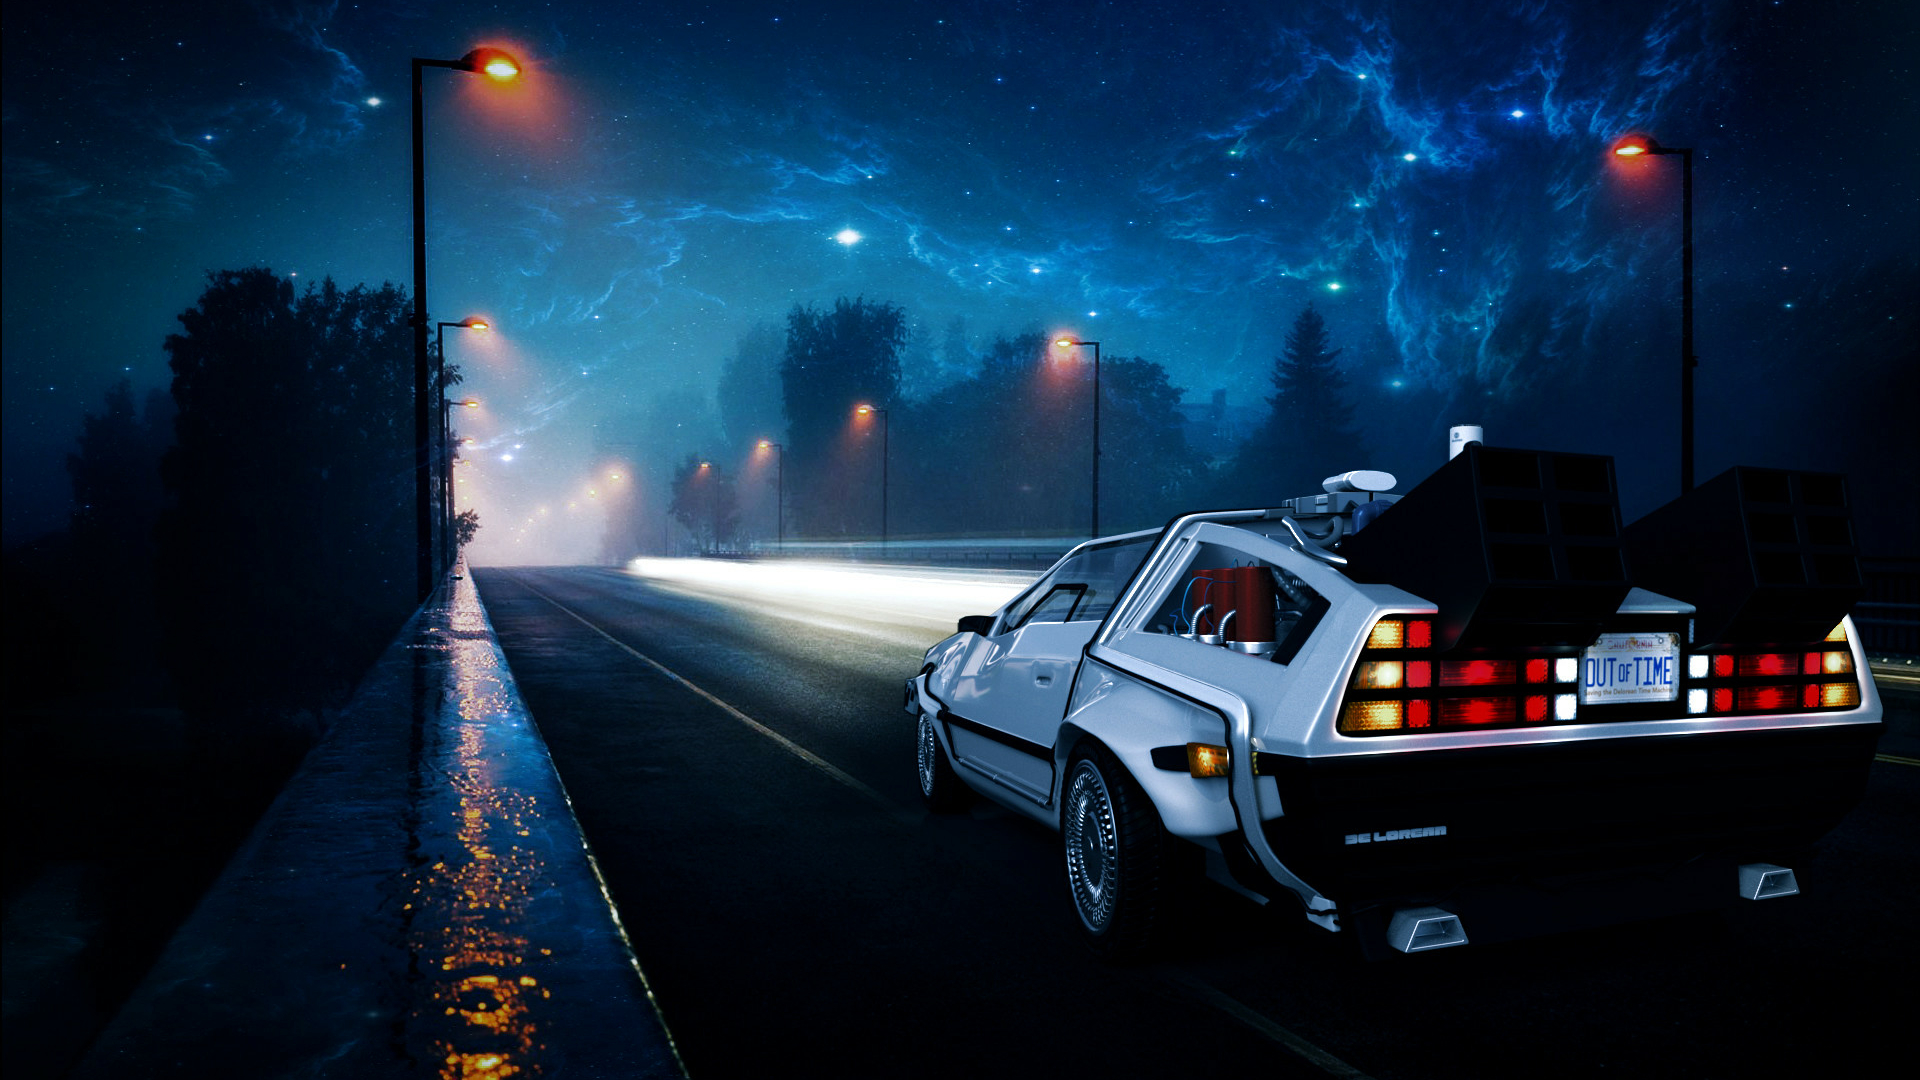 1920x1080 Back To The Future Delorean Car Illustration 1080p